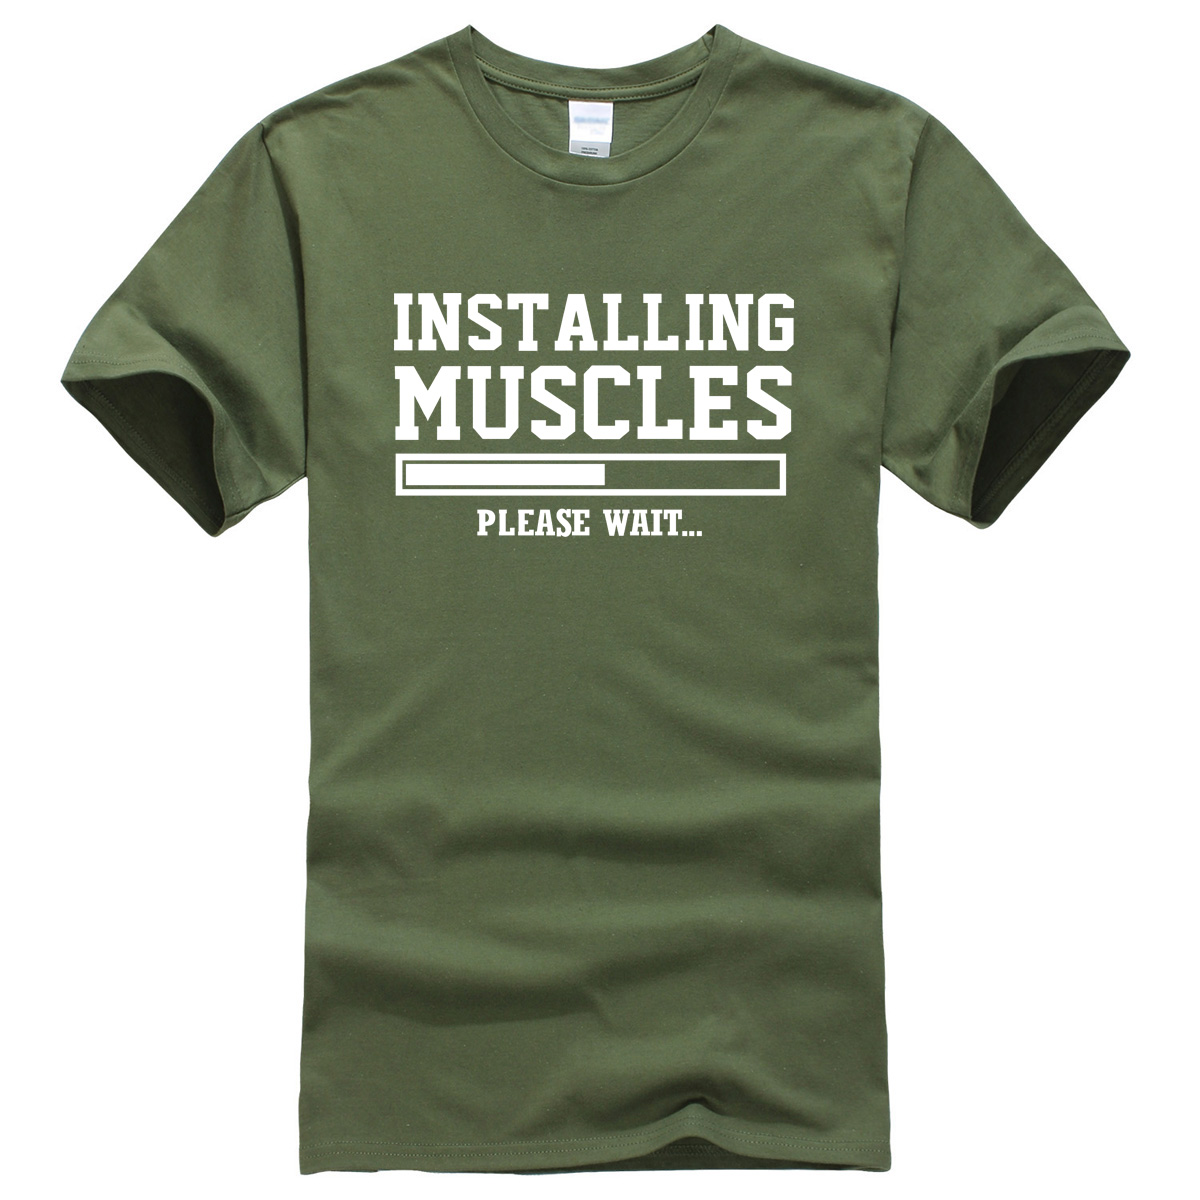 Men's   T  -  shirts   summer 2019 printed INSTALLING MUSCLES funny   T  -  shirt   fashion brand clothing crossfit   t     shirt   men homme fitness